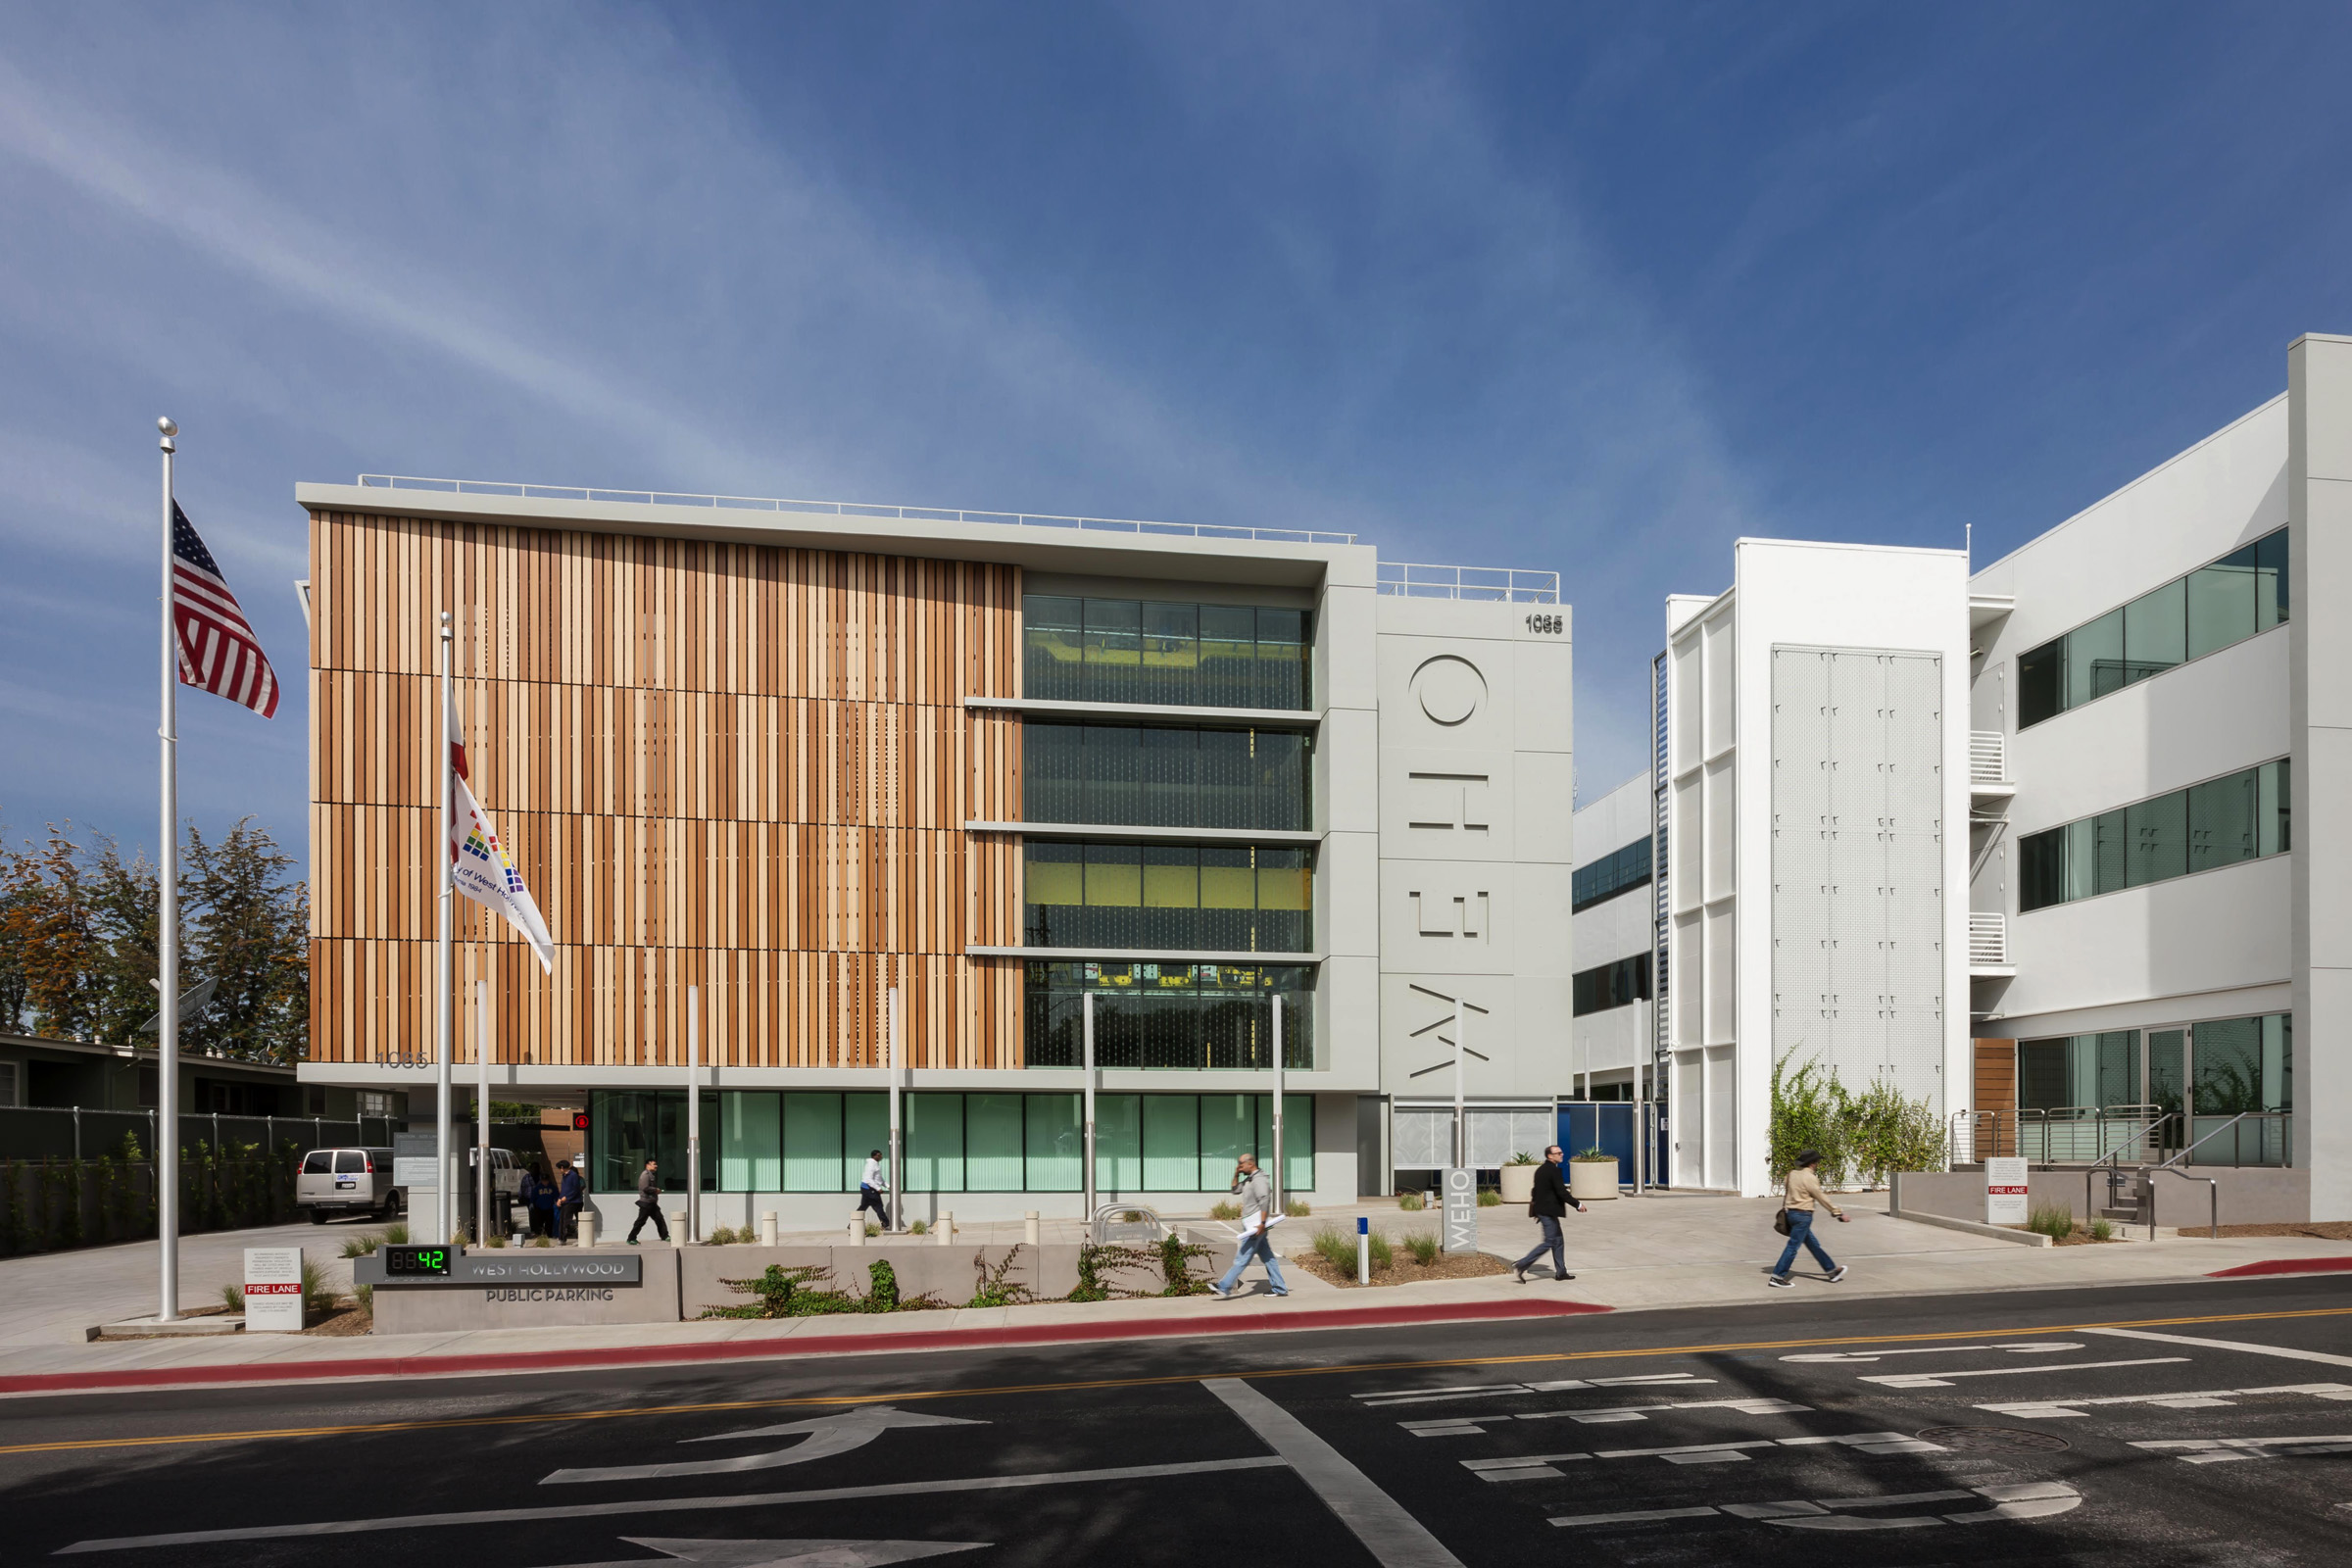 West hollywood debuts automated parking garage designed by lpa inc.